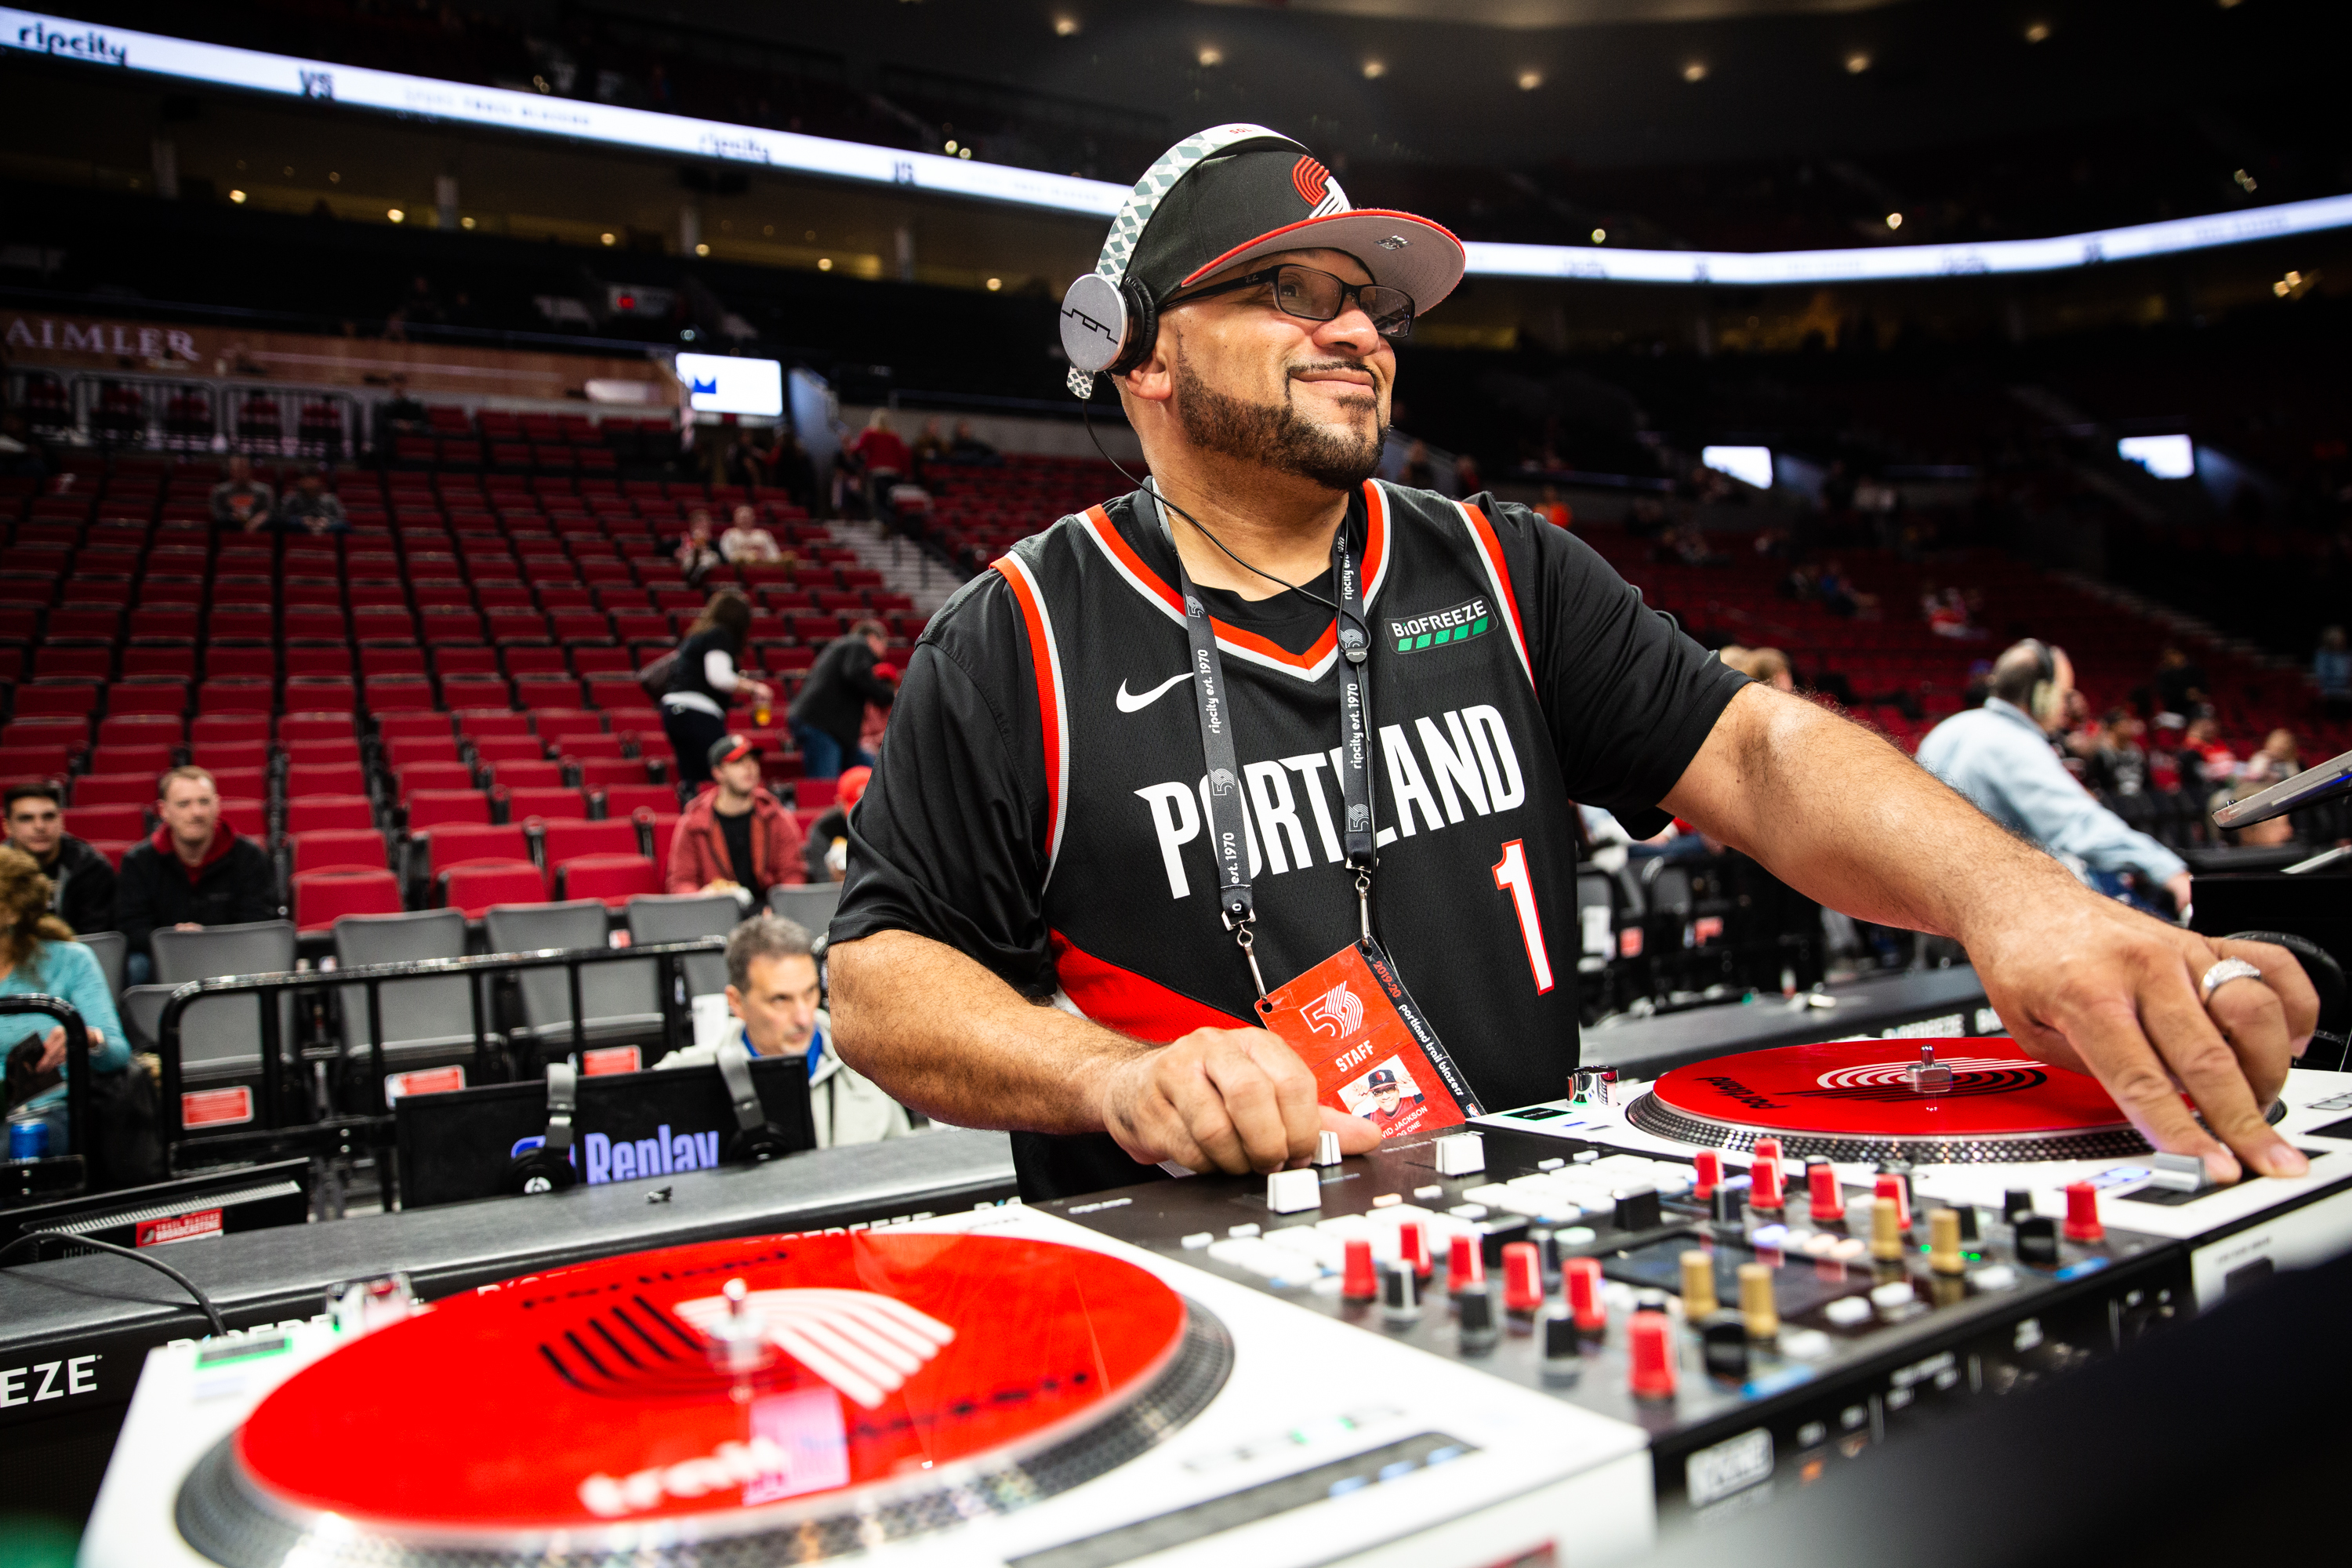 """David Jackson, """"DJ OG One,"""" plays tracks during pregame of a National Basketball Association Game between the Portland Trail Blazers and San Antonio Spurs at the Moda Center in Portland, Ore., Thursday, Feb. 6, 2020."""